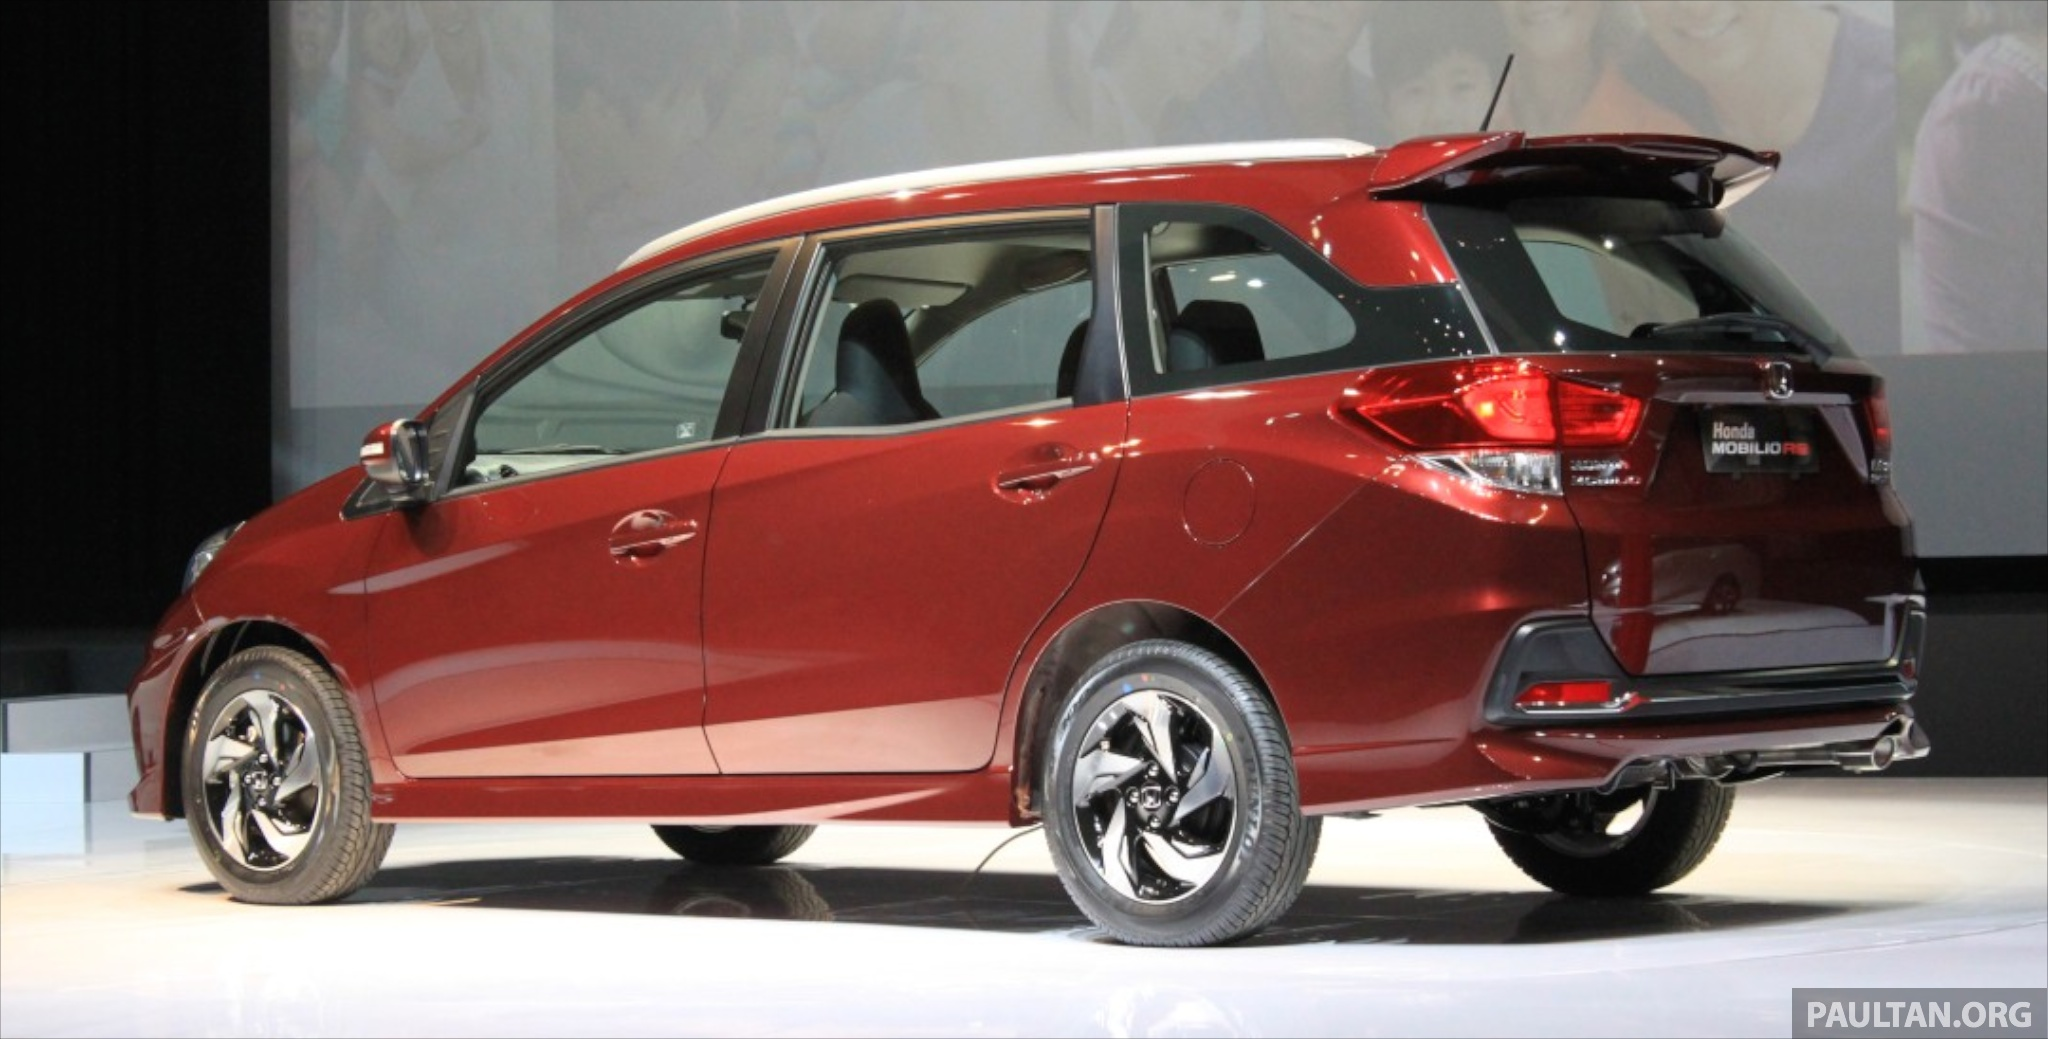 Honda mobilio rs range topper launched in indonesia image for Mobilia o mobilio